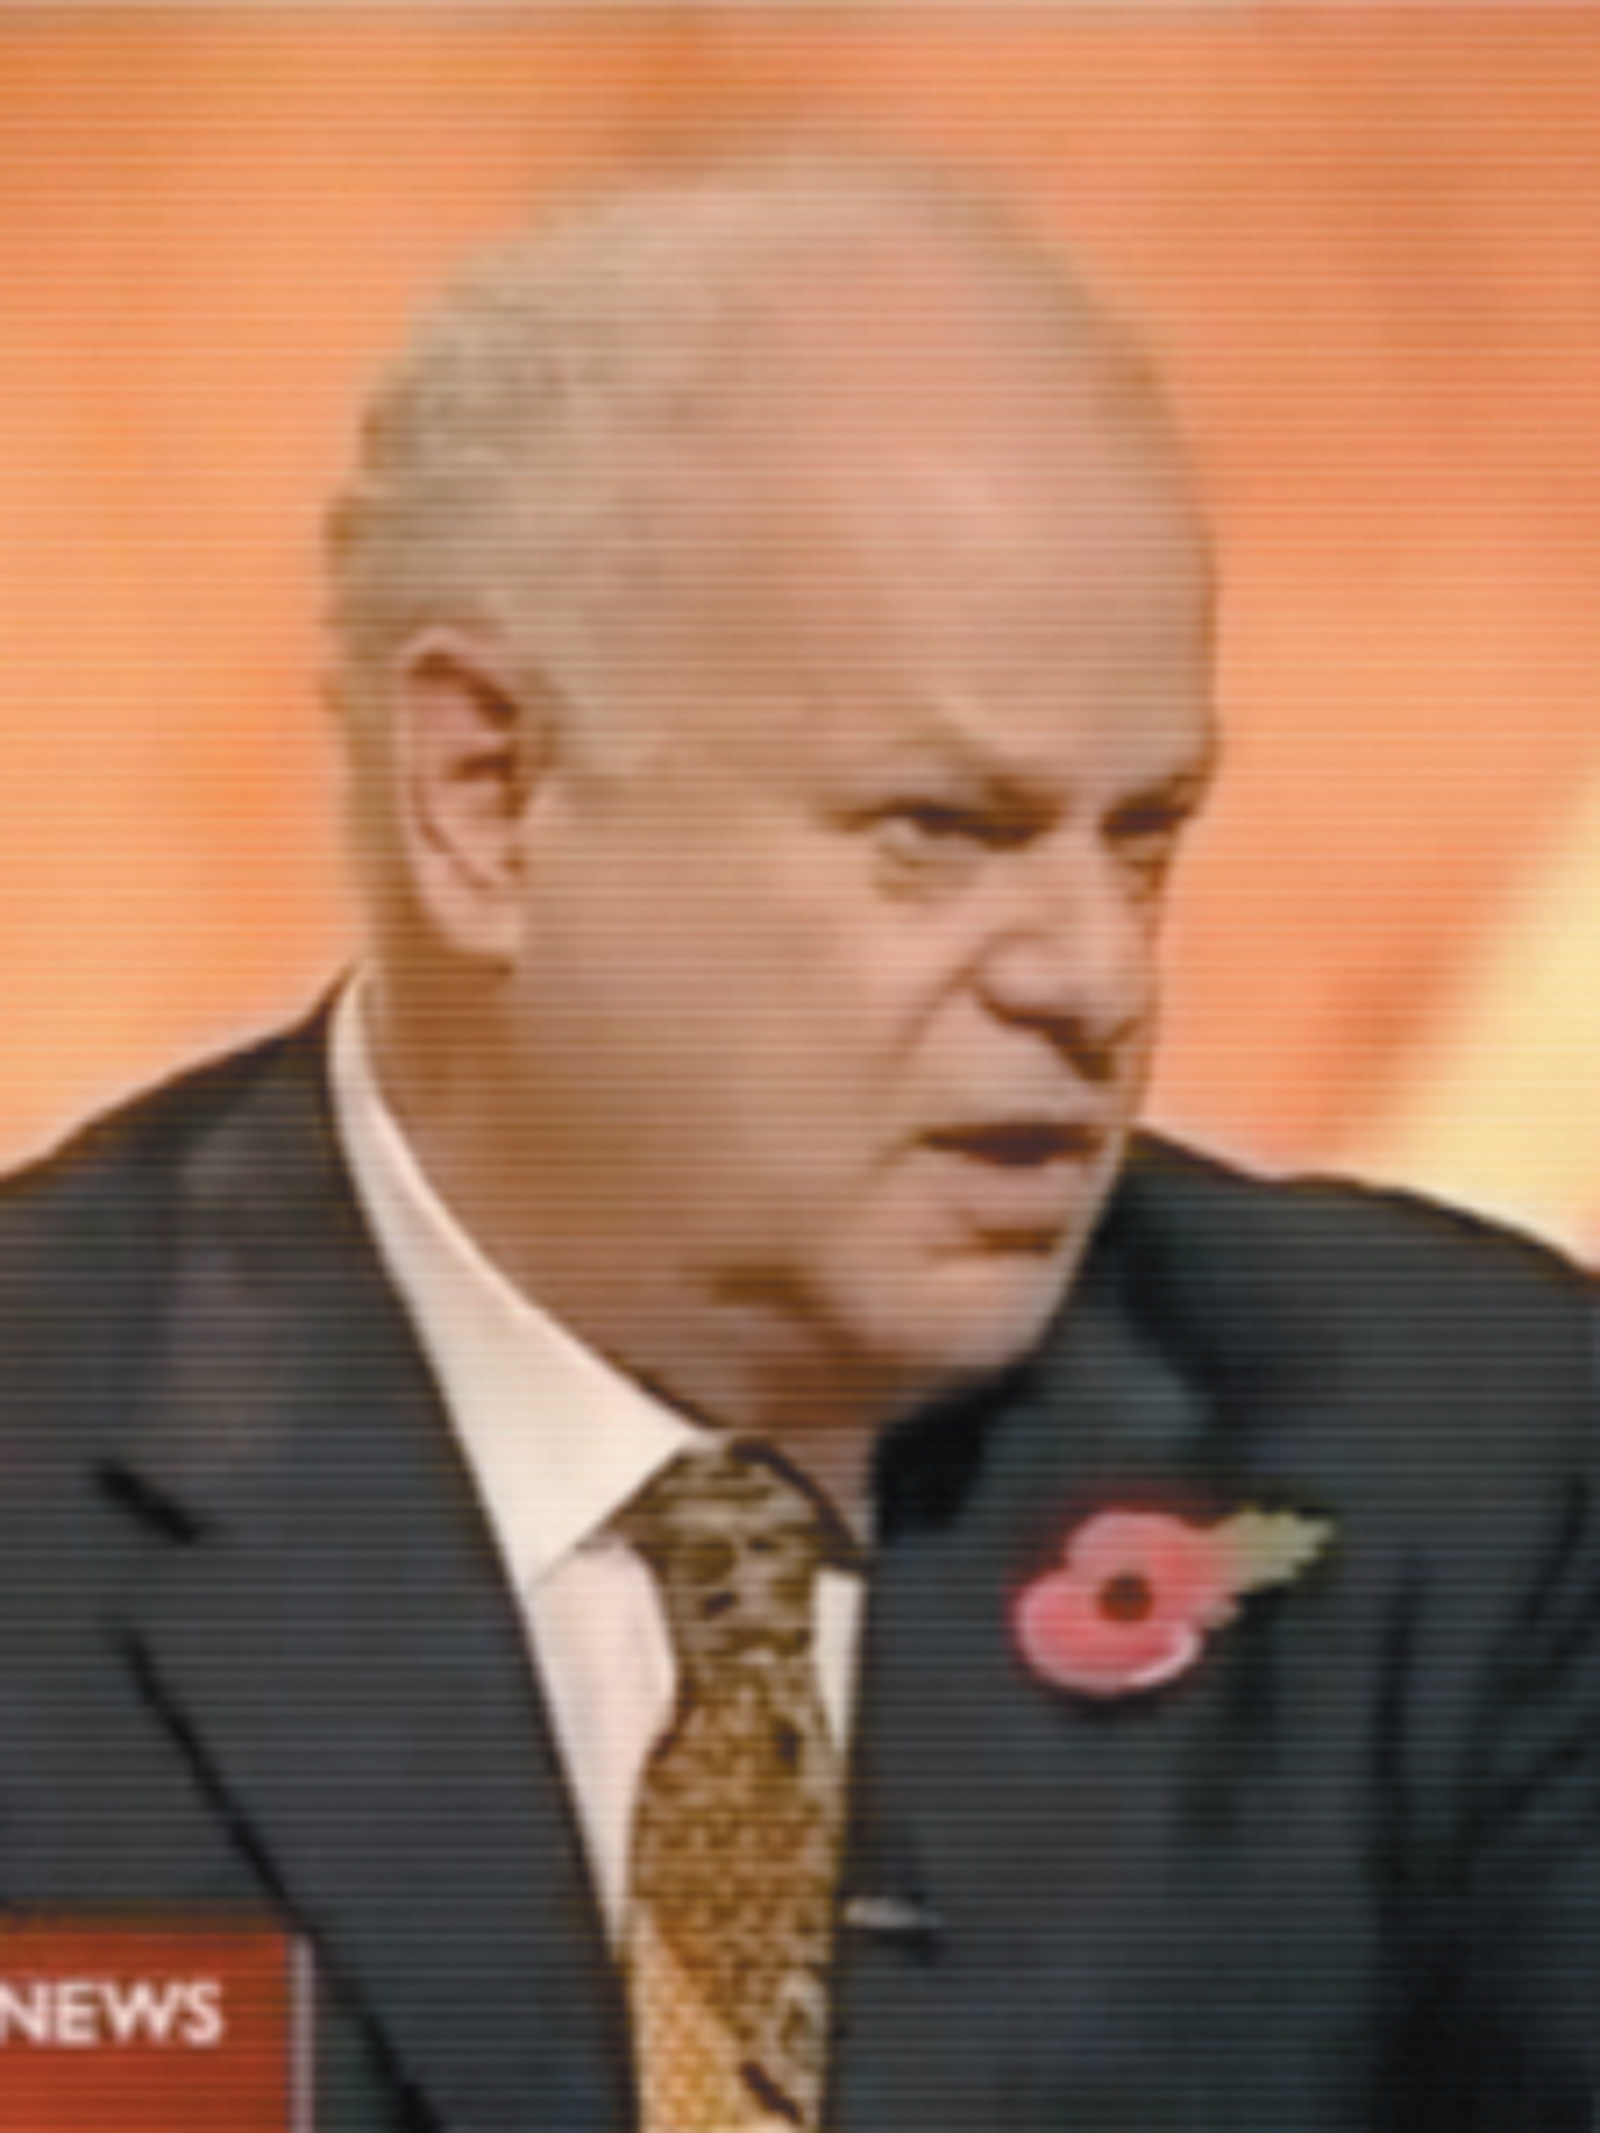 Positive Psychology founder Martin Seligman on the BBC program Hardtalk, December 2007